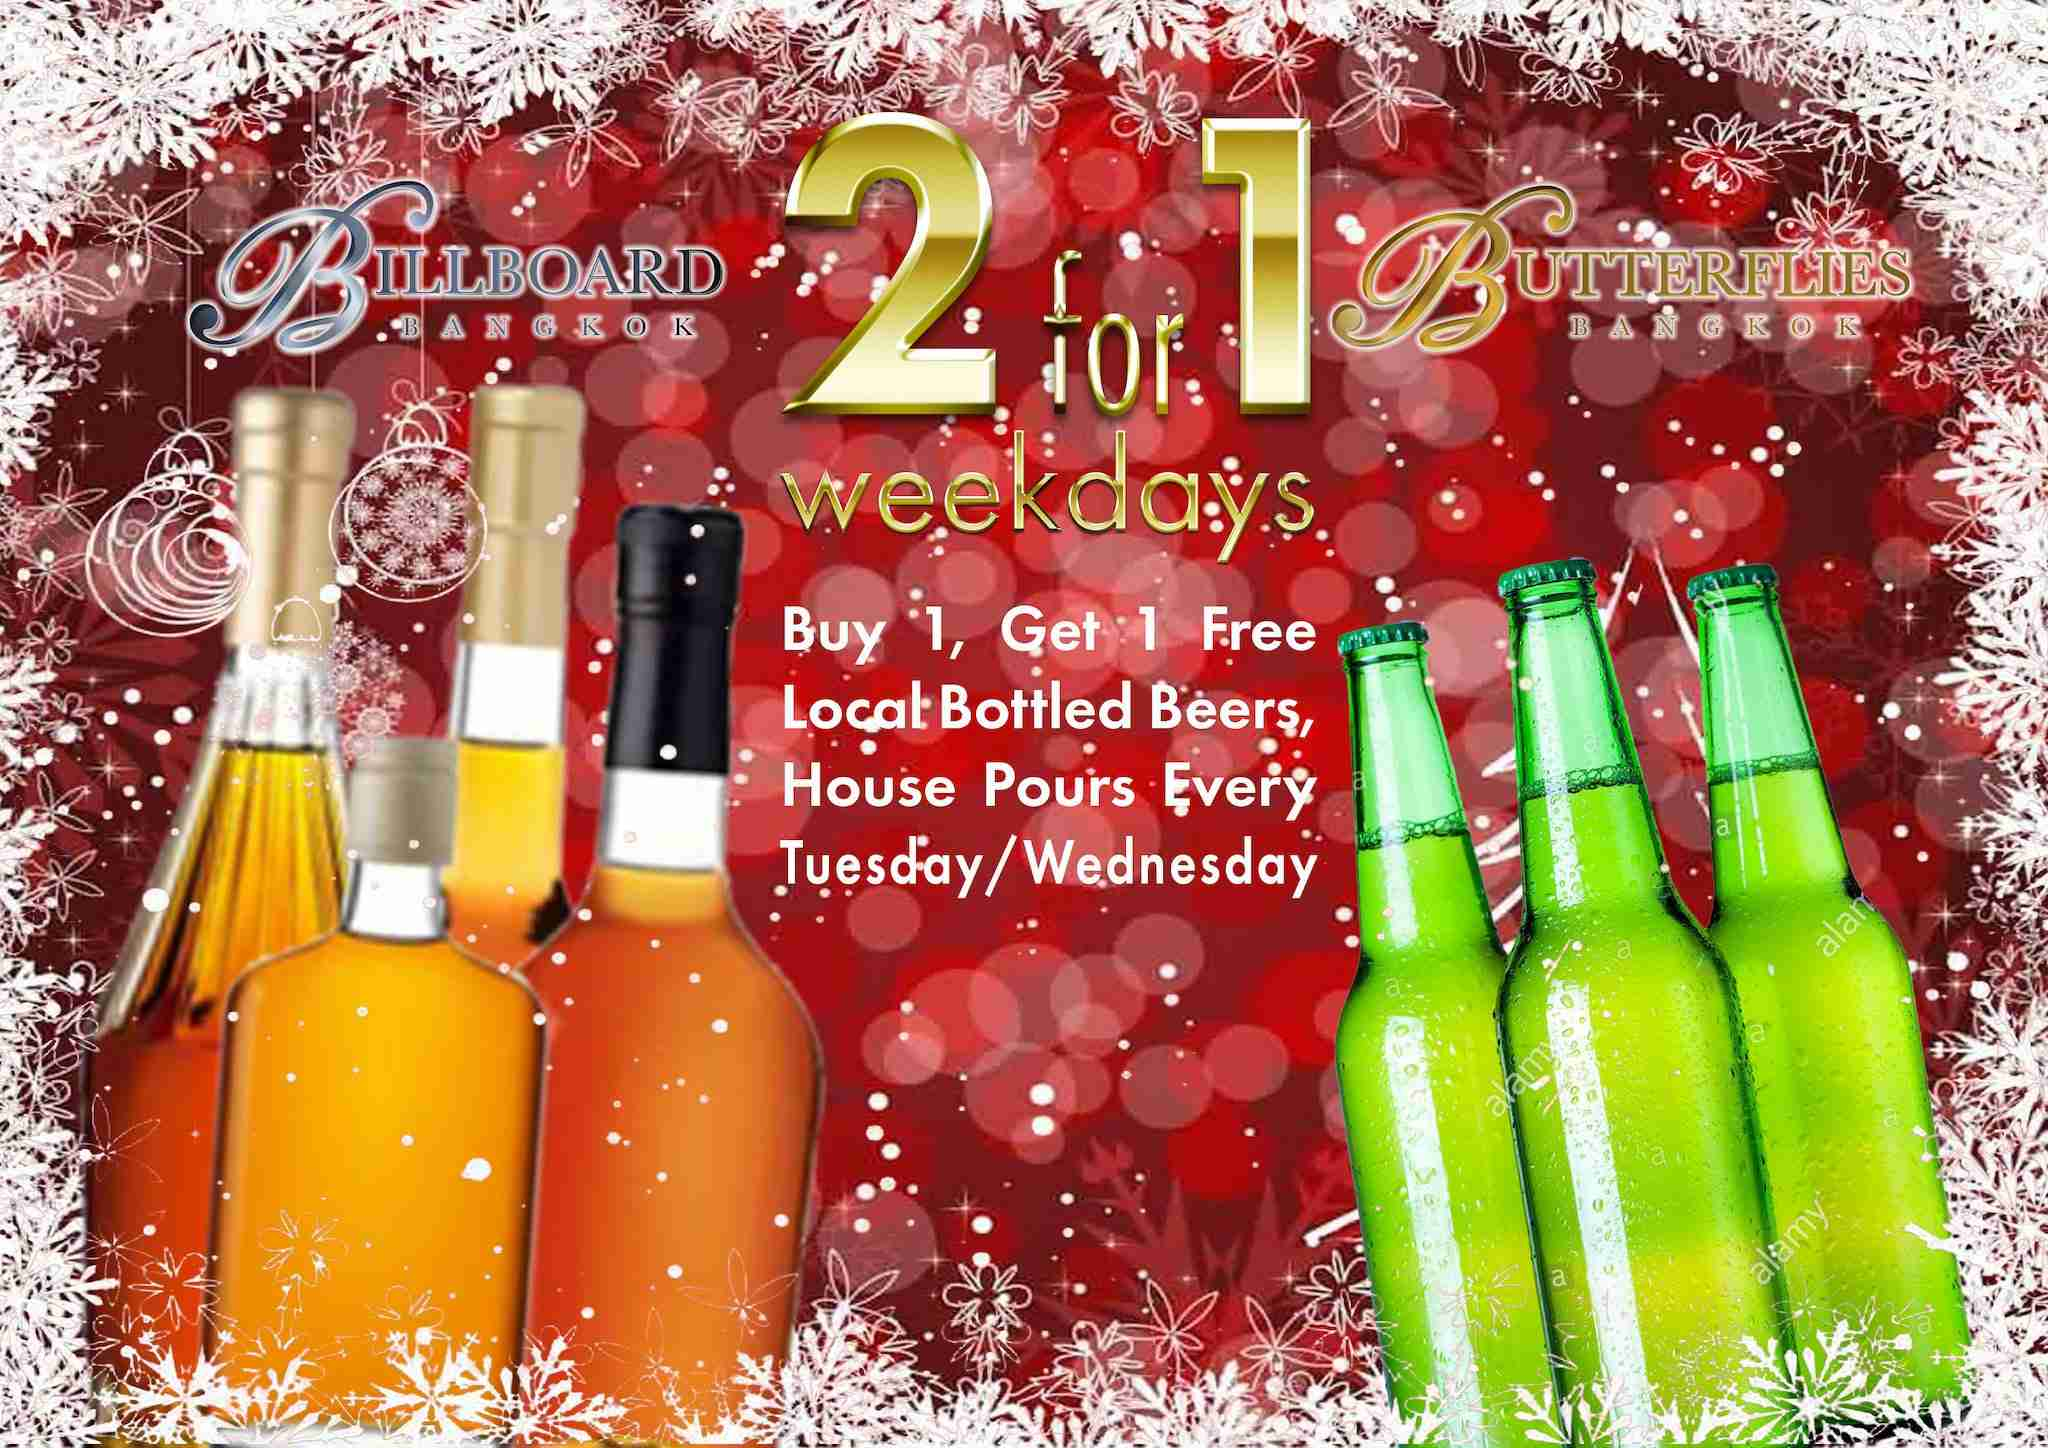 2-for-1 Weekdays Brings Buy 1, Get 1 Free Drinks to Butterflies Tuesdays, Wednesdays